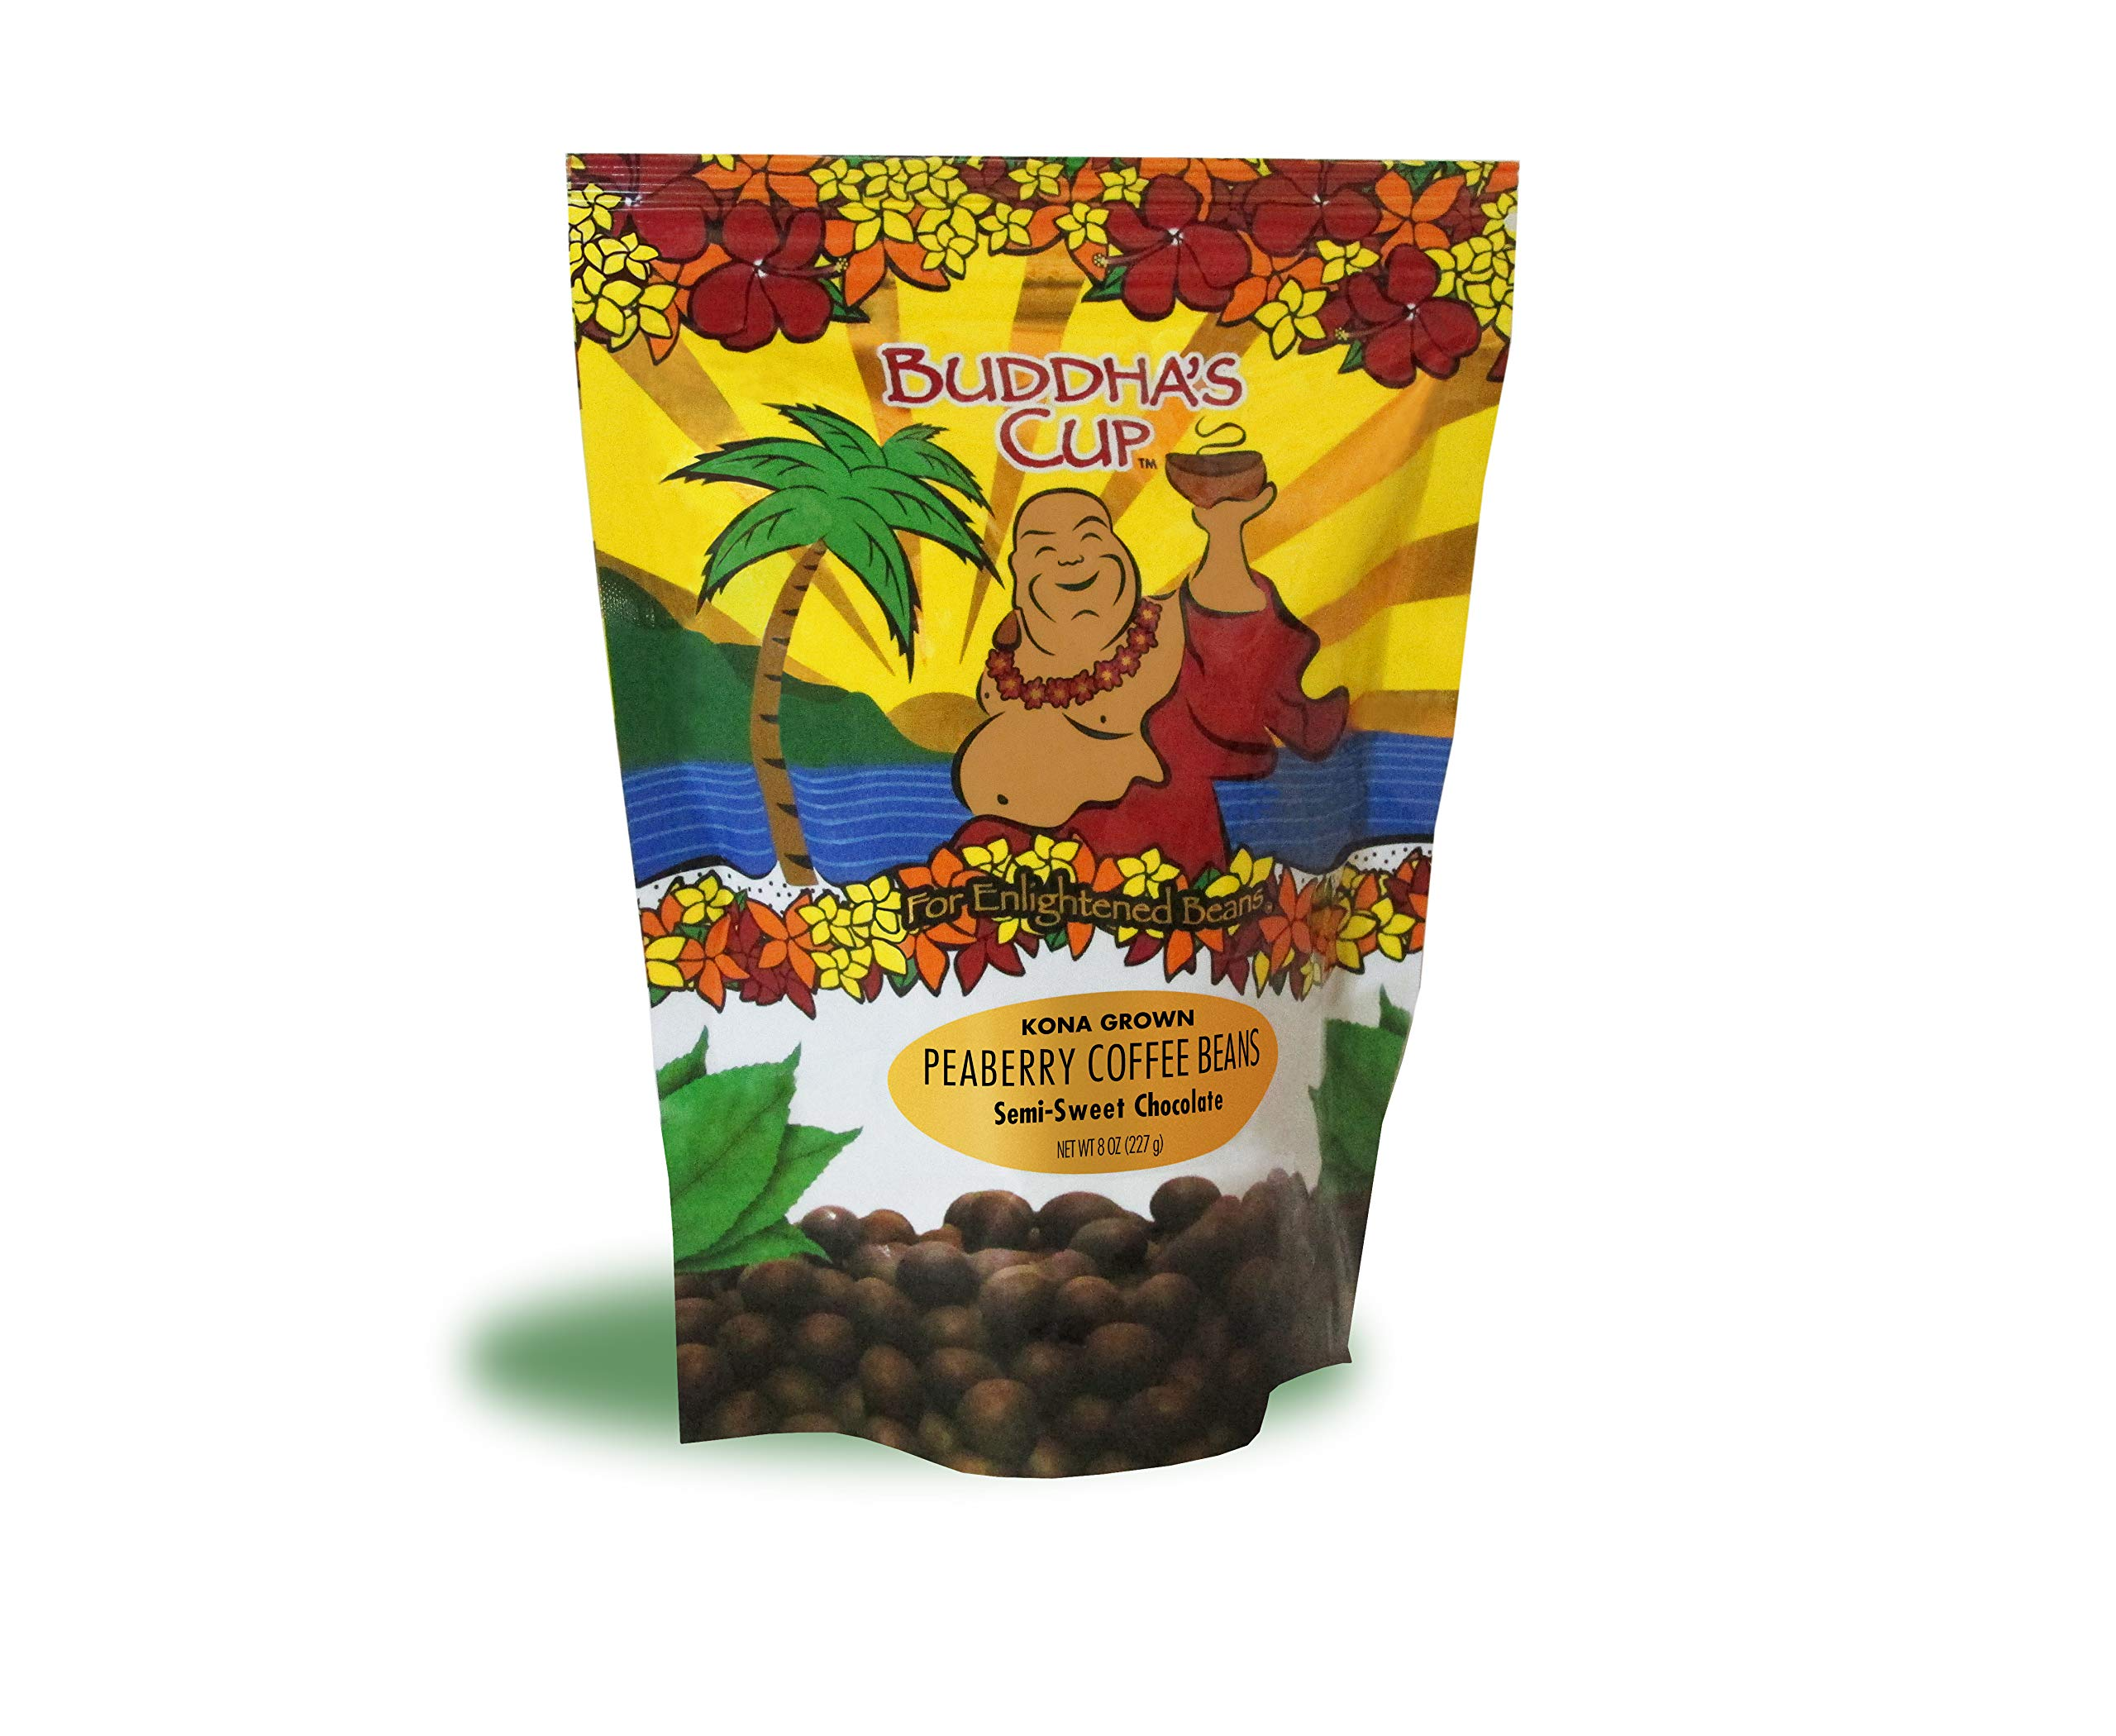 Chocolate Covered Coffee Beans by Buddha's Cup Semi-Sweet Chocolate Covered Peaberry Coffee Beans - 100% Kona Coffee - 8oz bag by Buddha's Cup